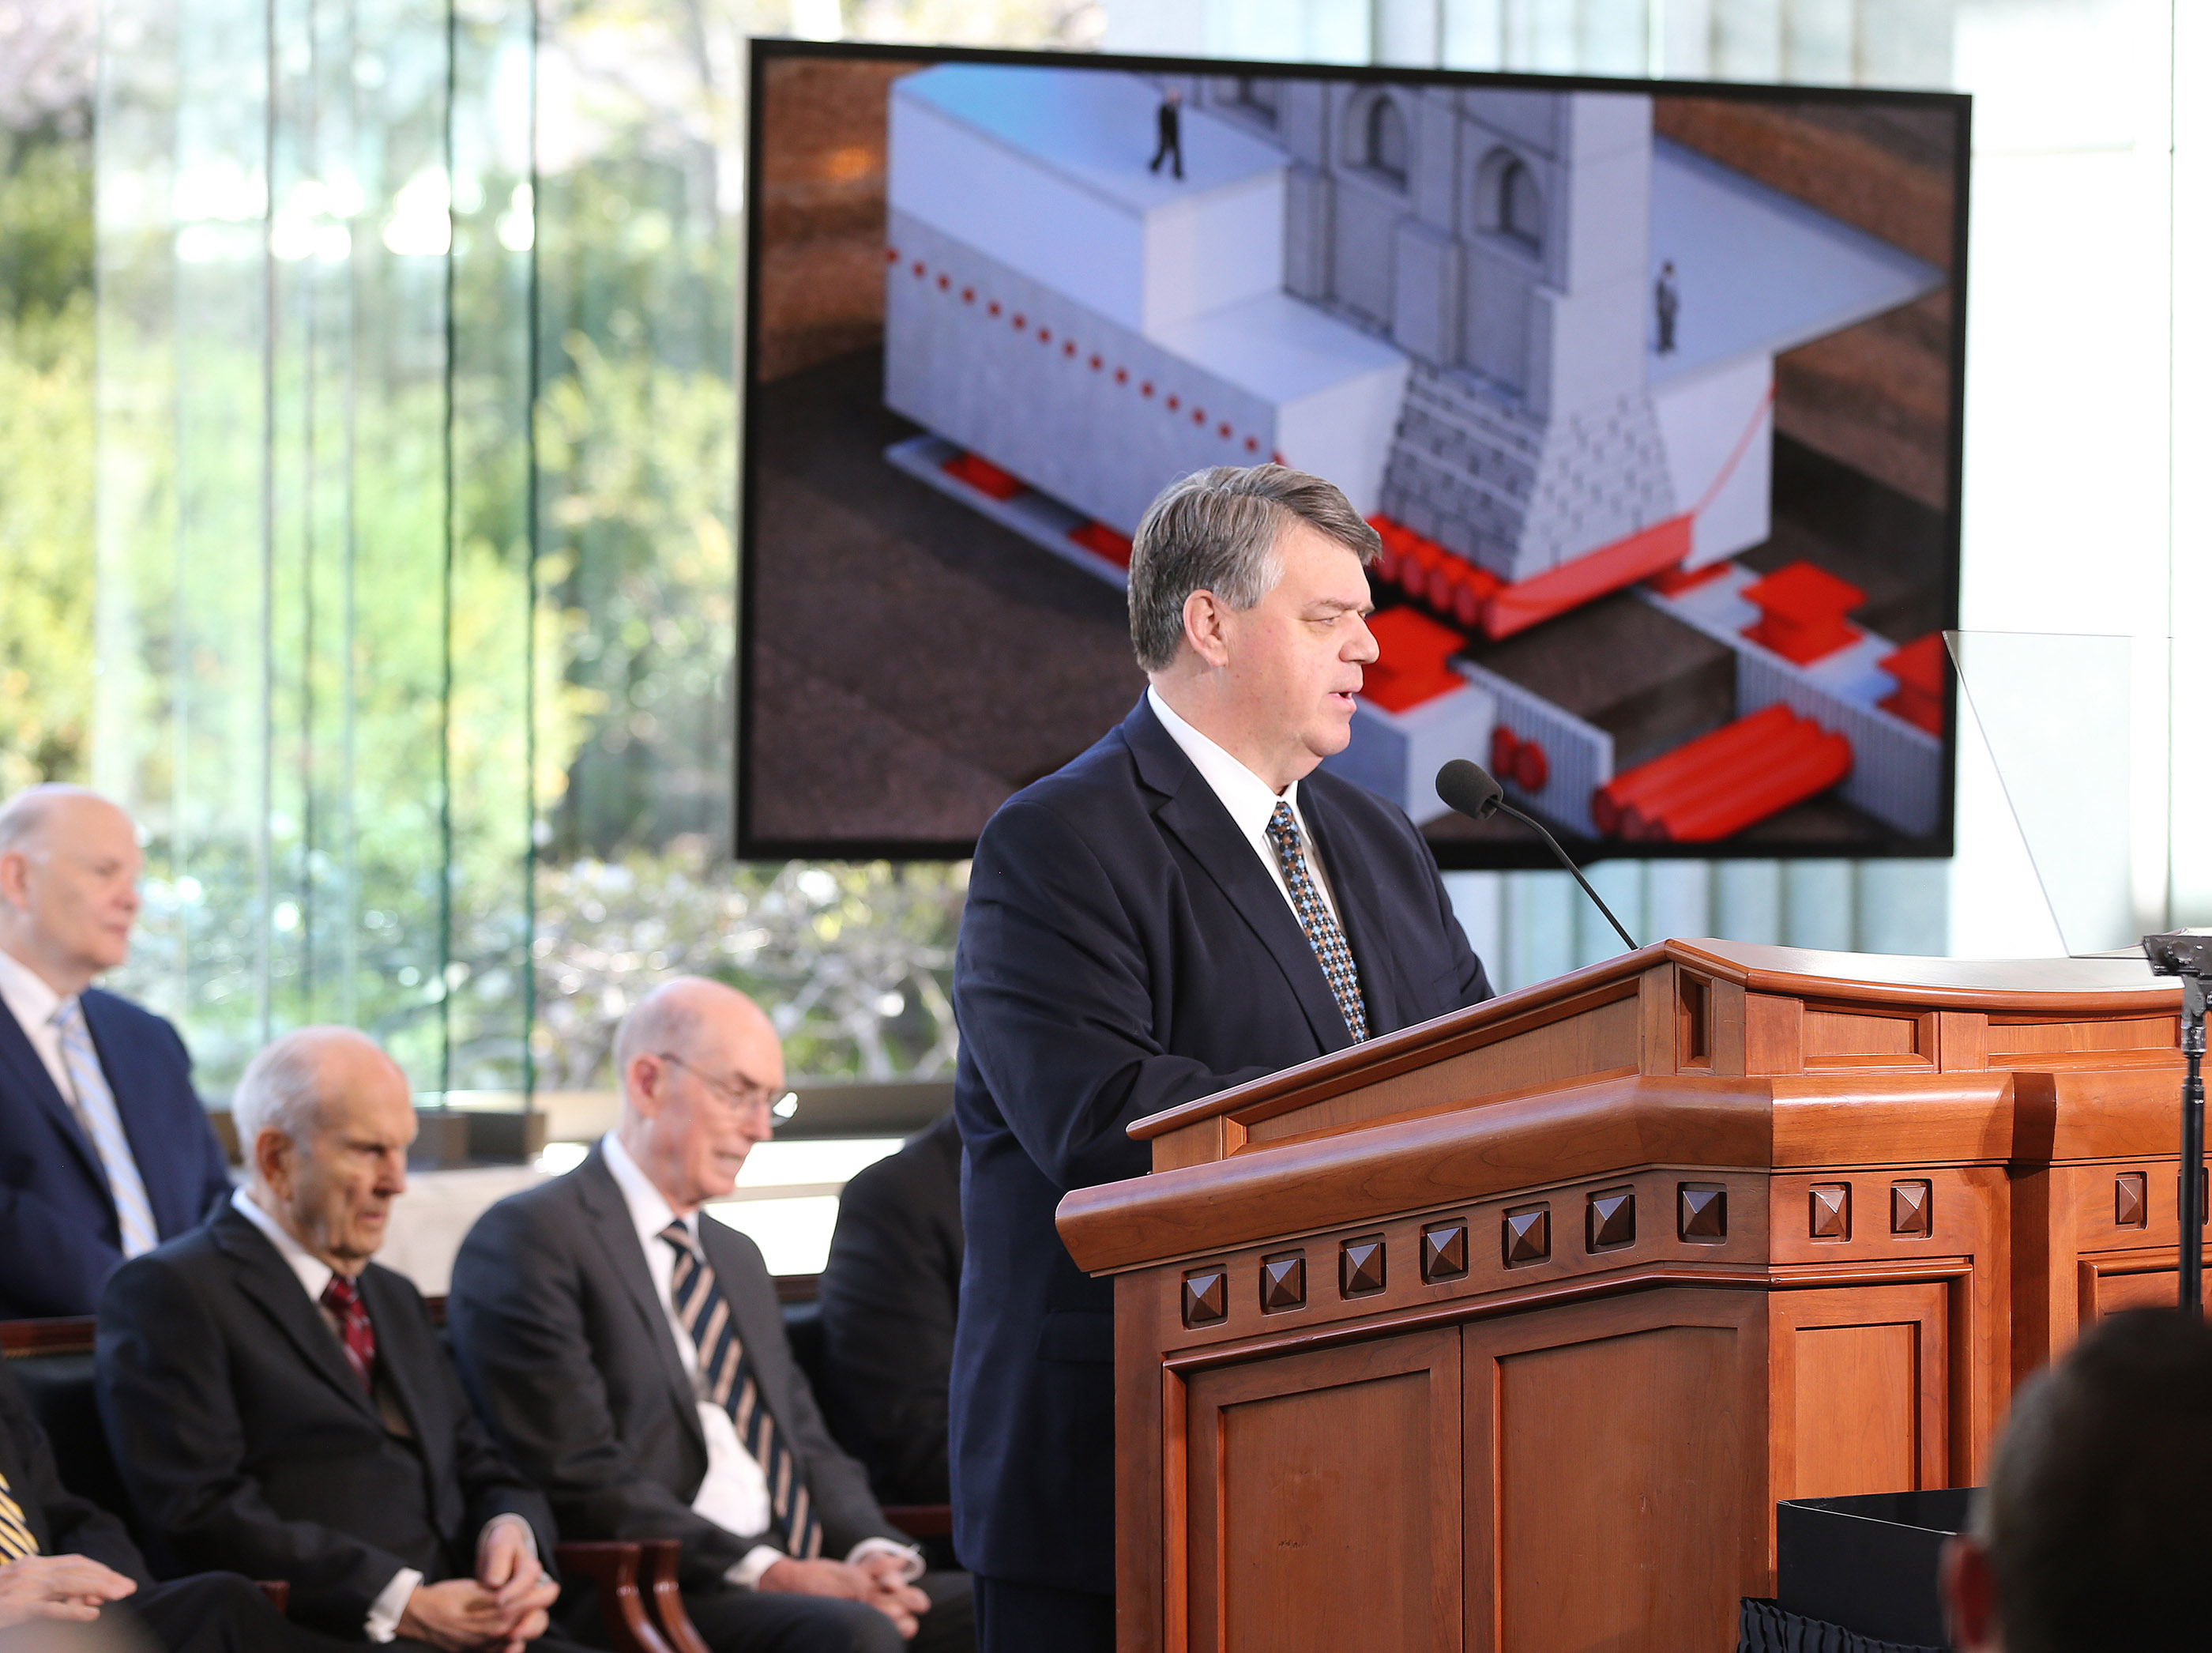 Brent Roberts, director of operations for The Church of Jesus Christ of Latter-day Saints, talks about renovation plans for the Salt Lake Temple during at a press conference in Salt Lake City on Friday, April 19, 2019.